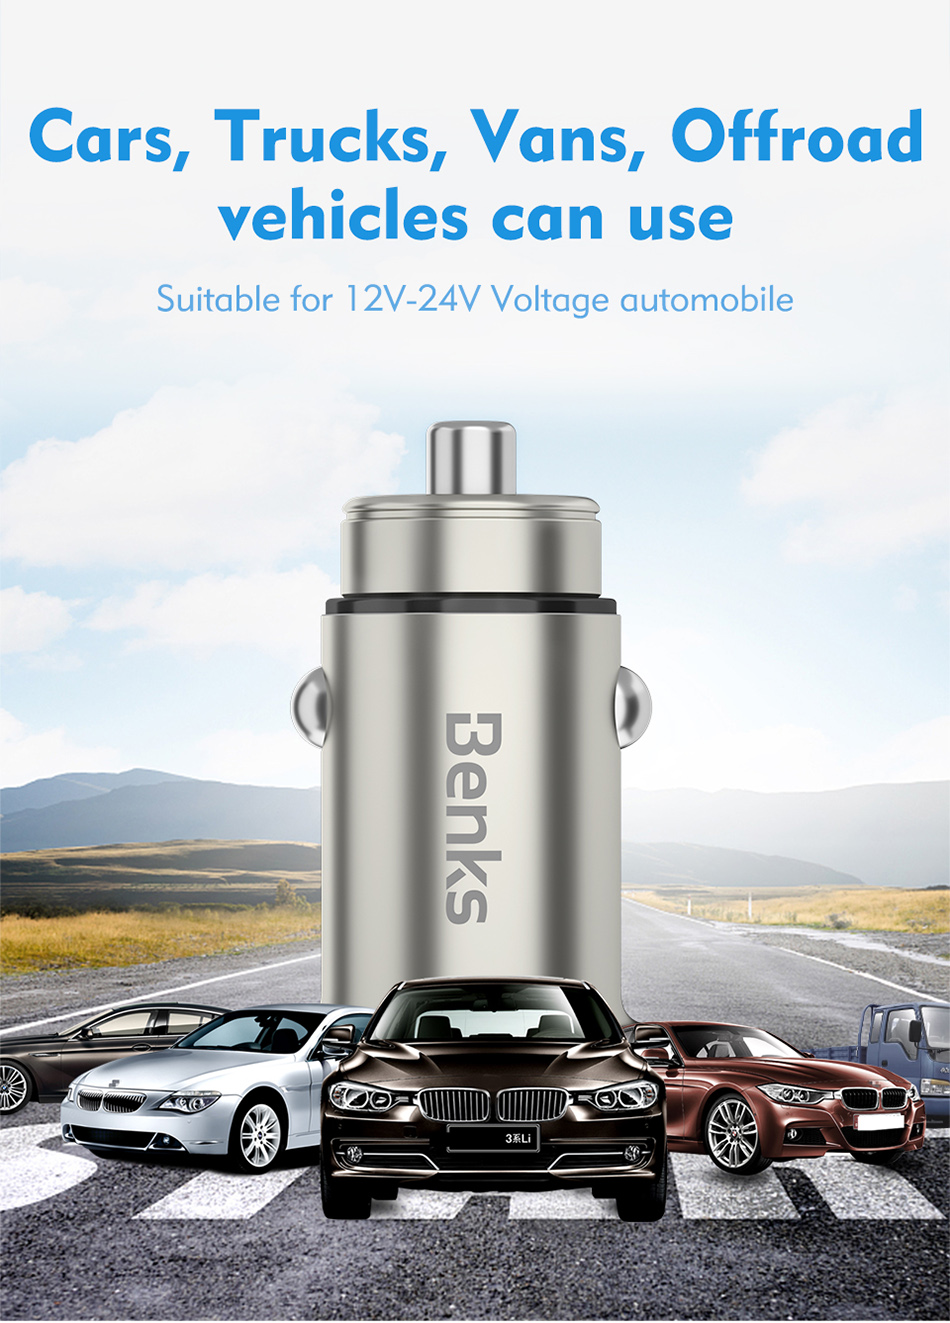 Benks Dual USB Port Quick Car Charger Lighting For iPhone X 10 8 7 Huawei Samsung Galaxy S7S6 Unviersal 4.8A Fast Auto Charger (6)